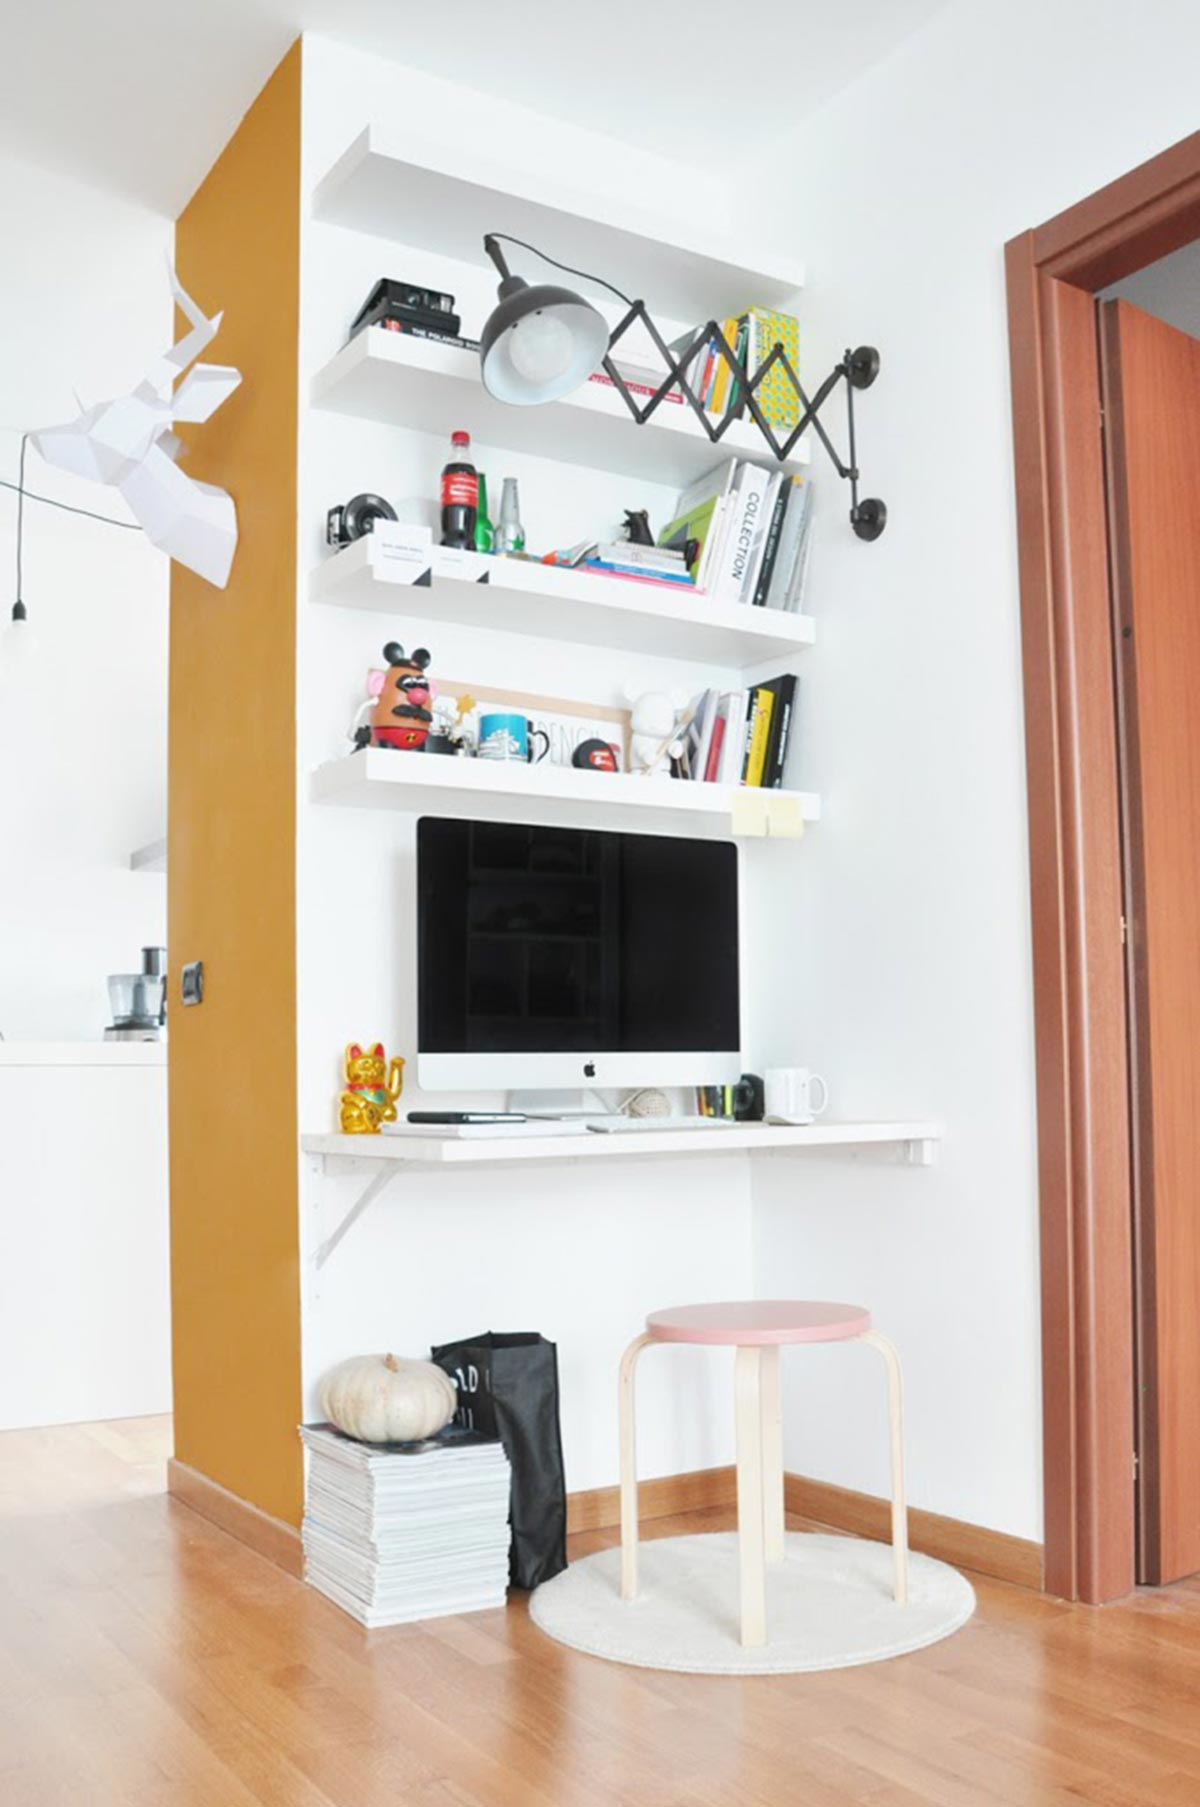 DIY: Create your own Home Office corner